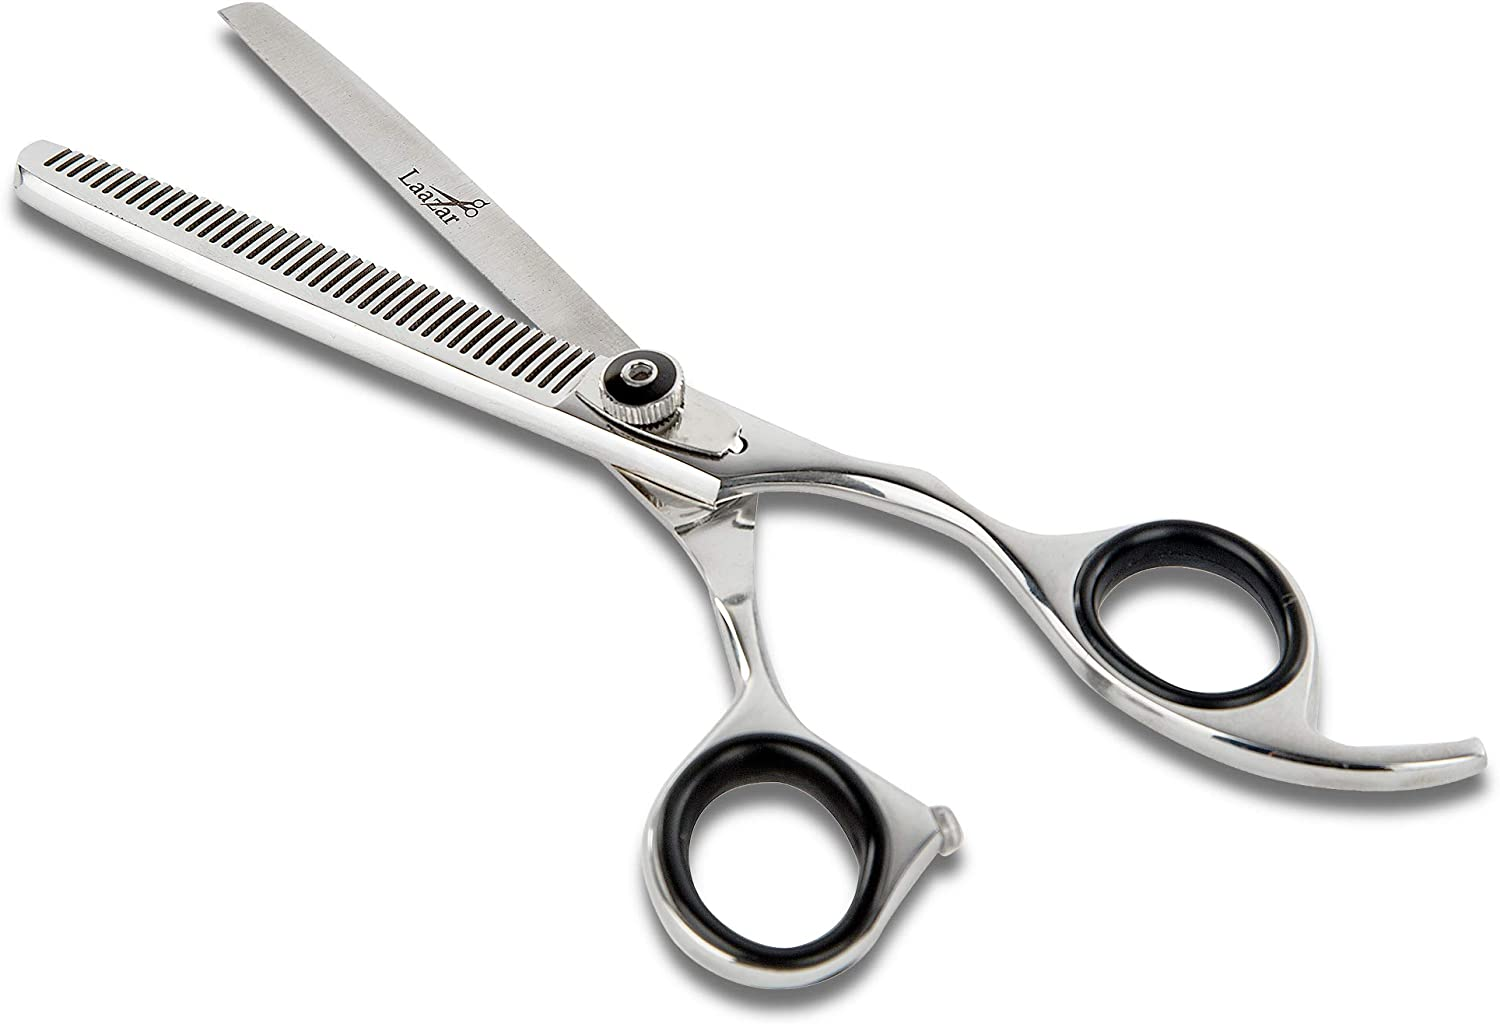 Laazar Professional Shears Popular brand in the world for Dogs Year-end annual account case Cats Leather Includ and